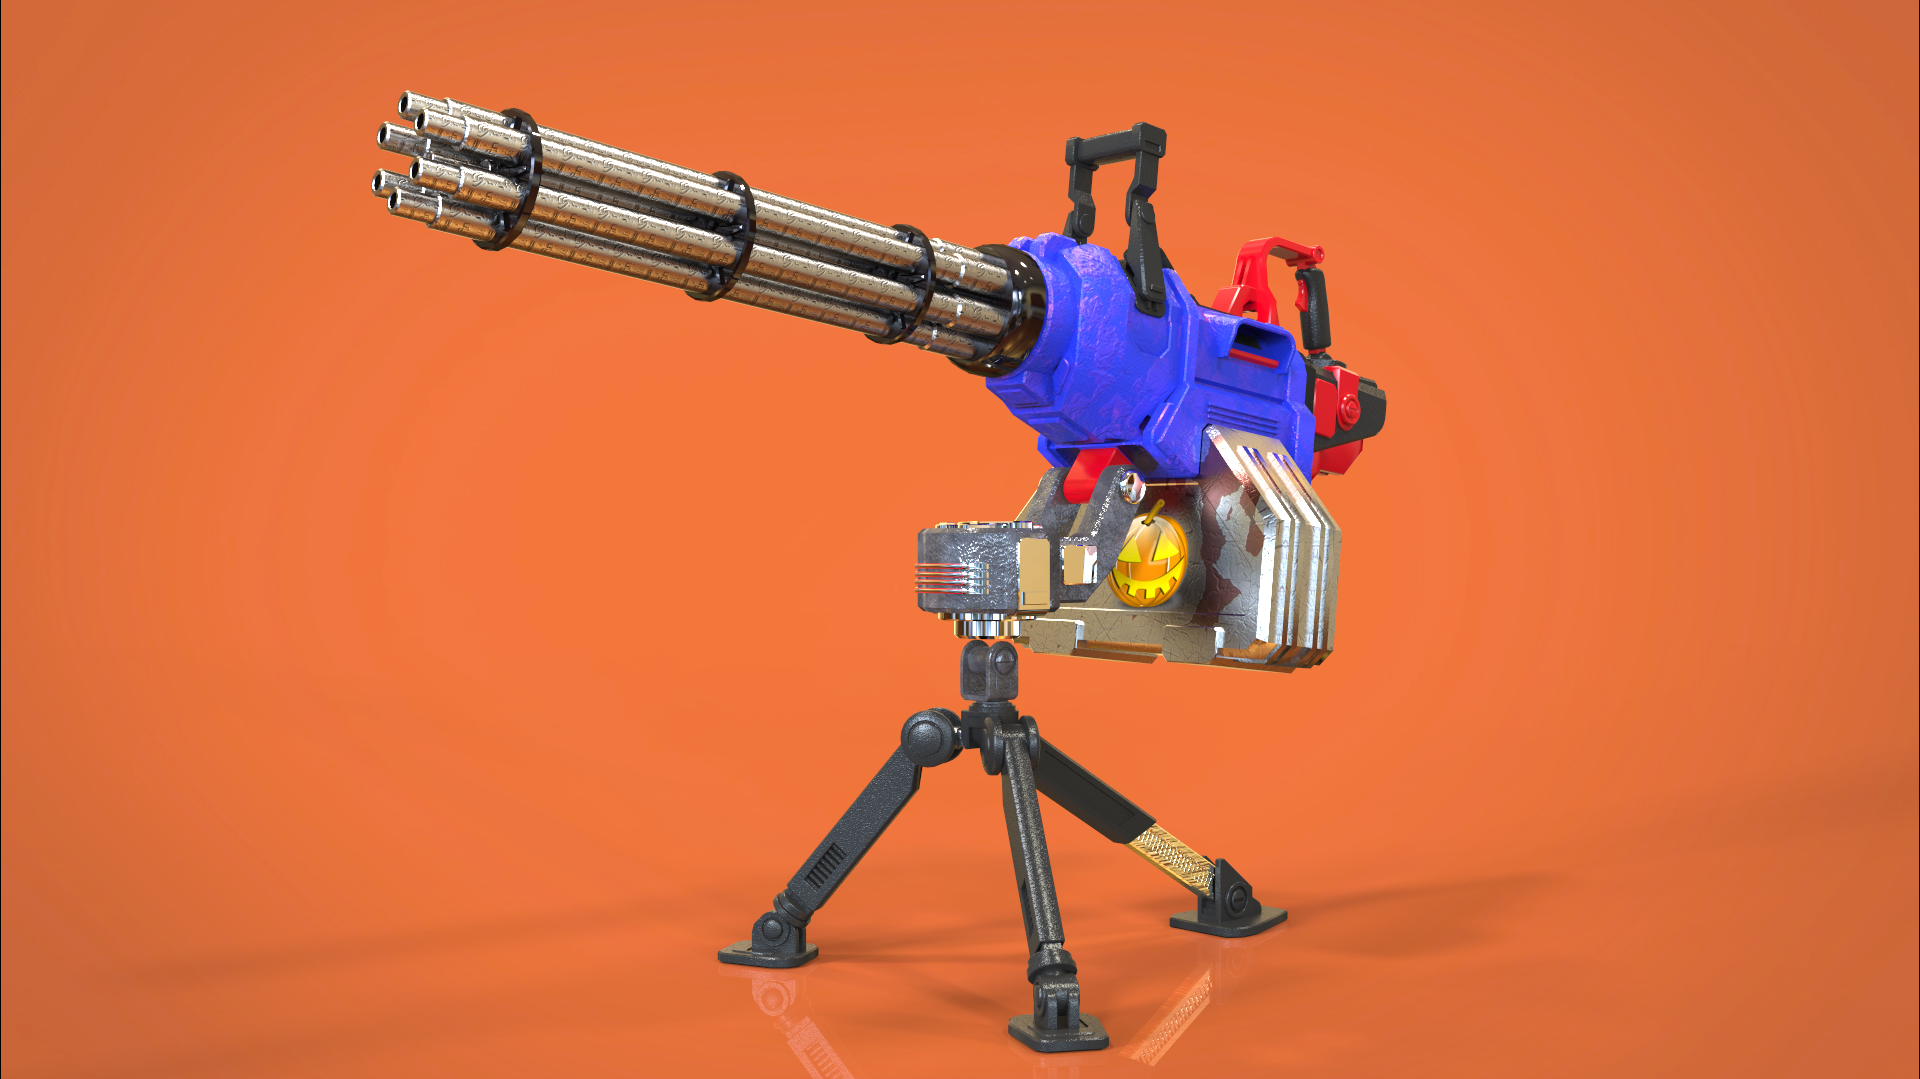 Just mini gun 3d art